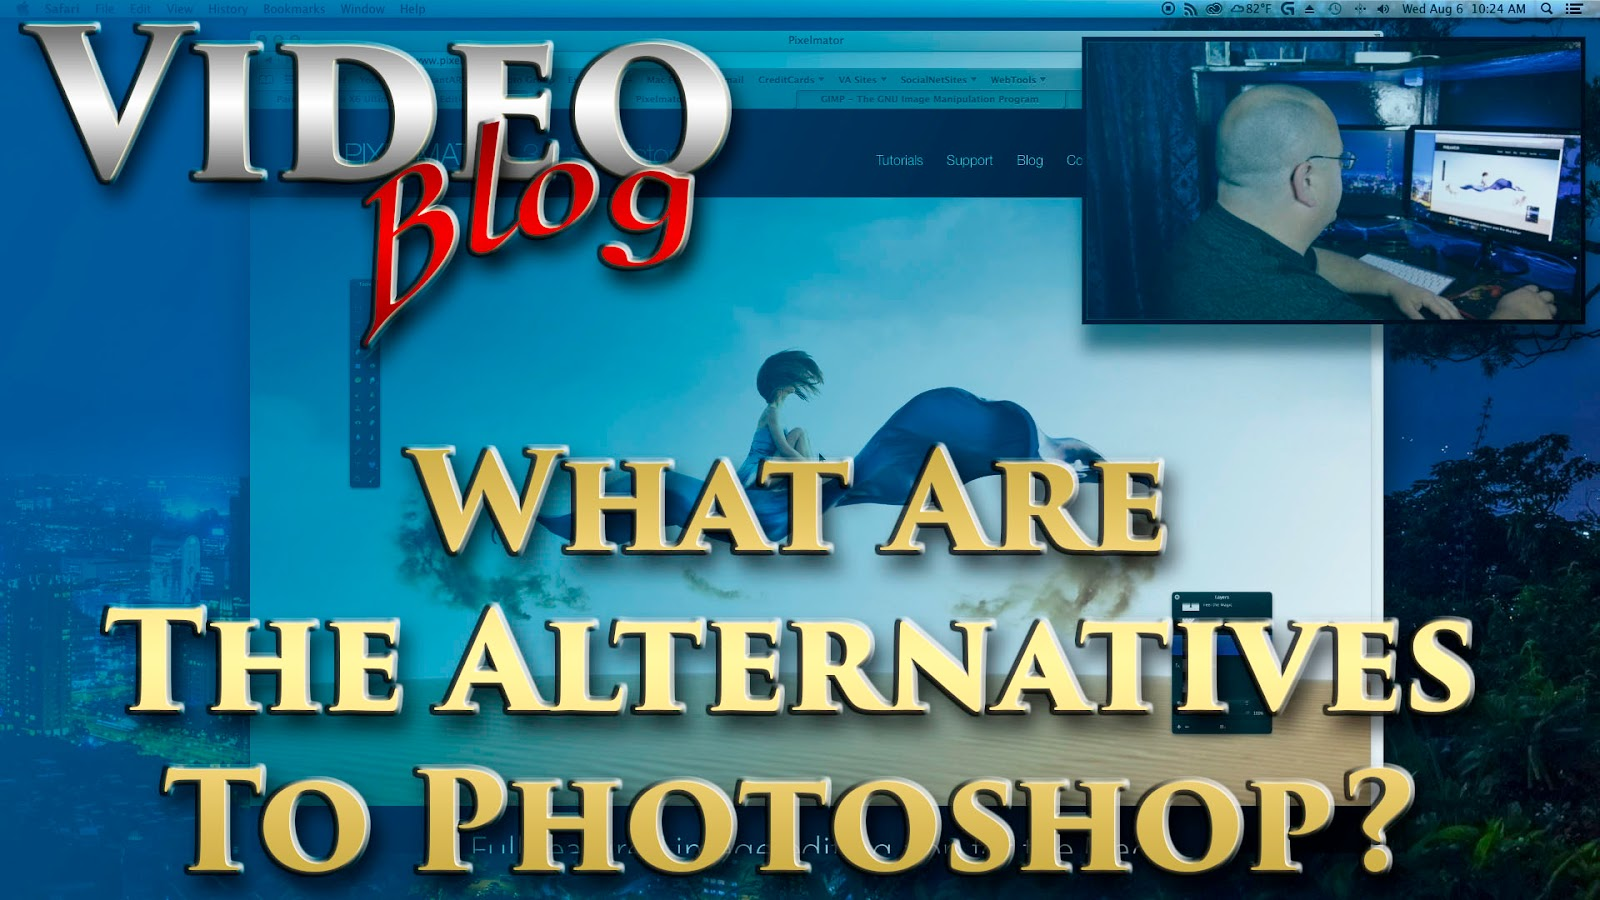 What Are The Alternatives To Photoshop?